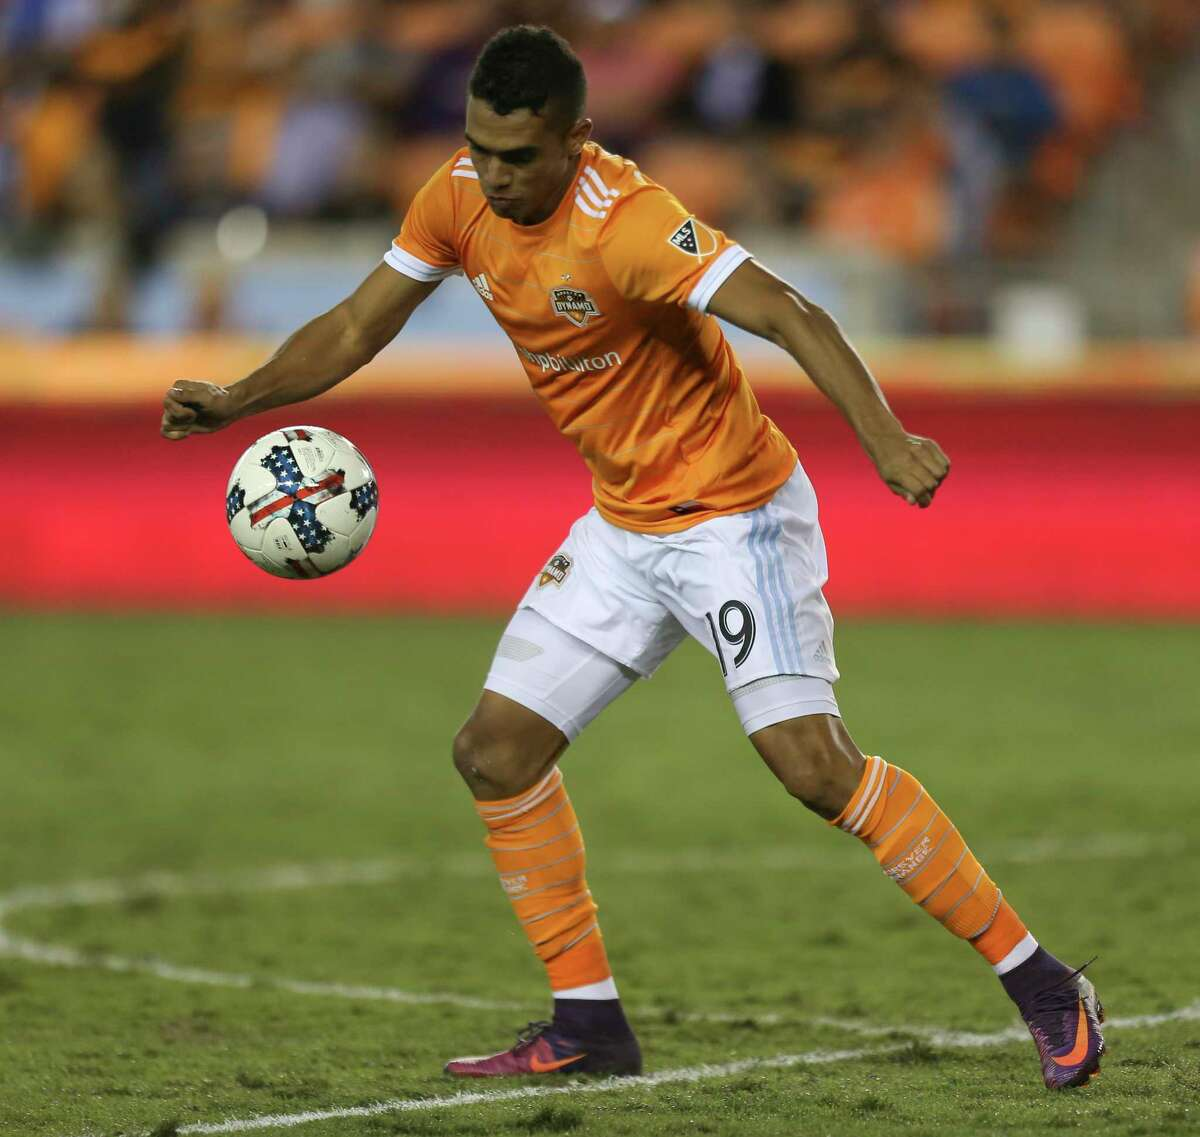 Houston Dynamo: They will play against the Seattle Sounders FC at BBVA Compass Stadium Tuesday, Nov. 21 at 8:30 p.m. More Details: www.houstondynamo.com/schedule